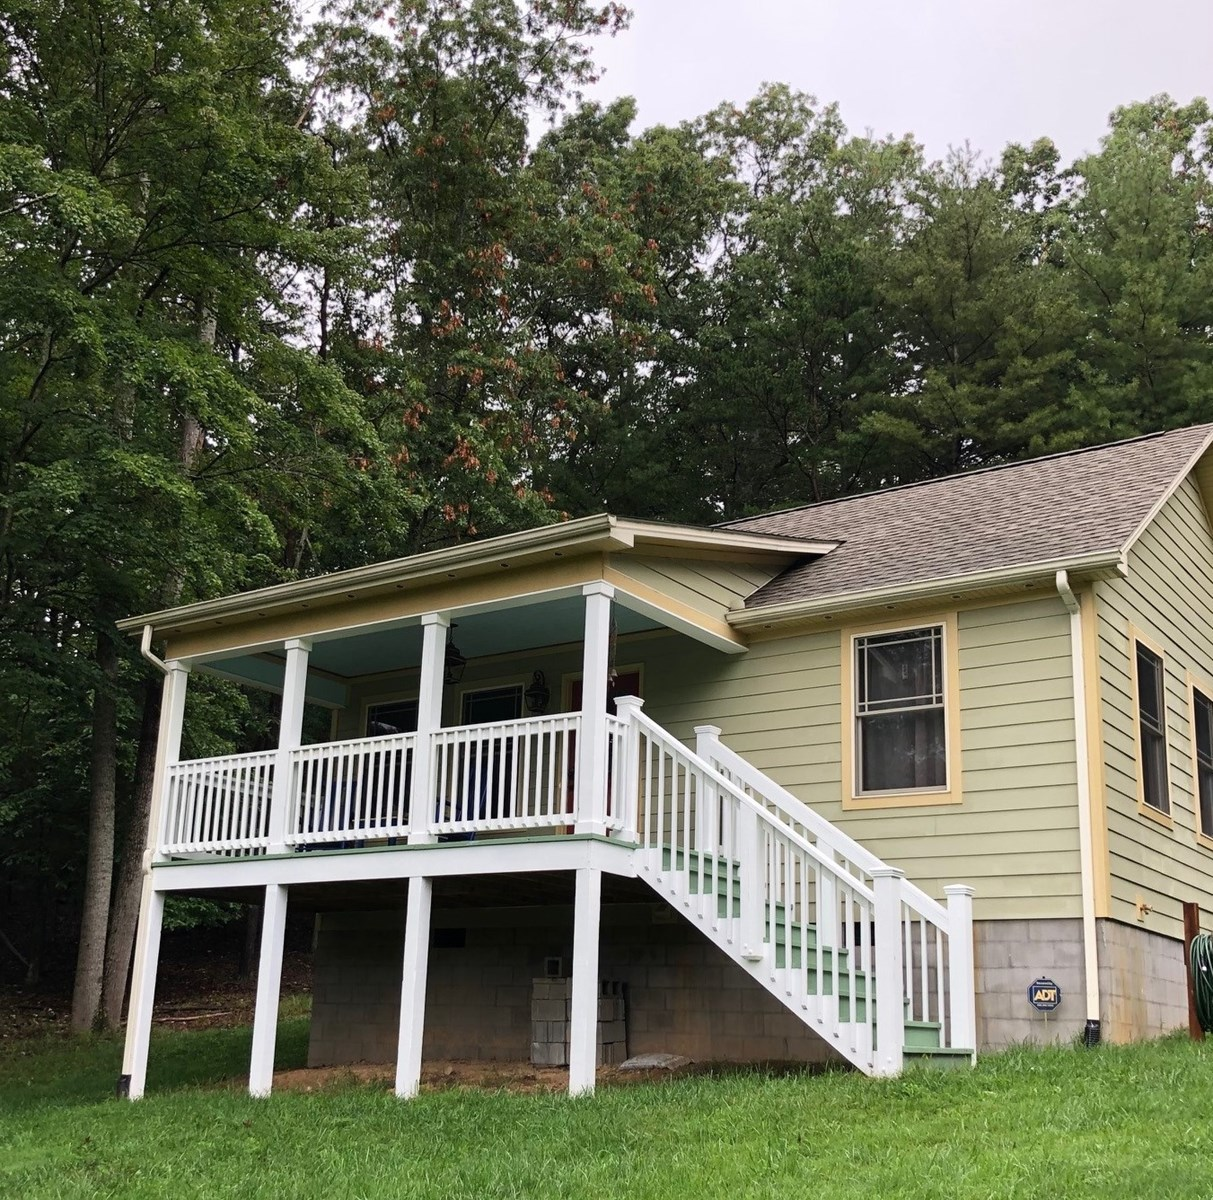 Home for Sale in Pilot VA